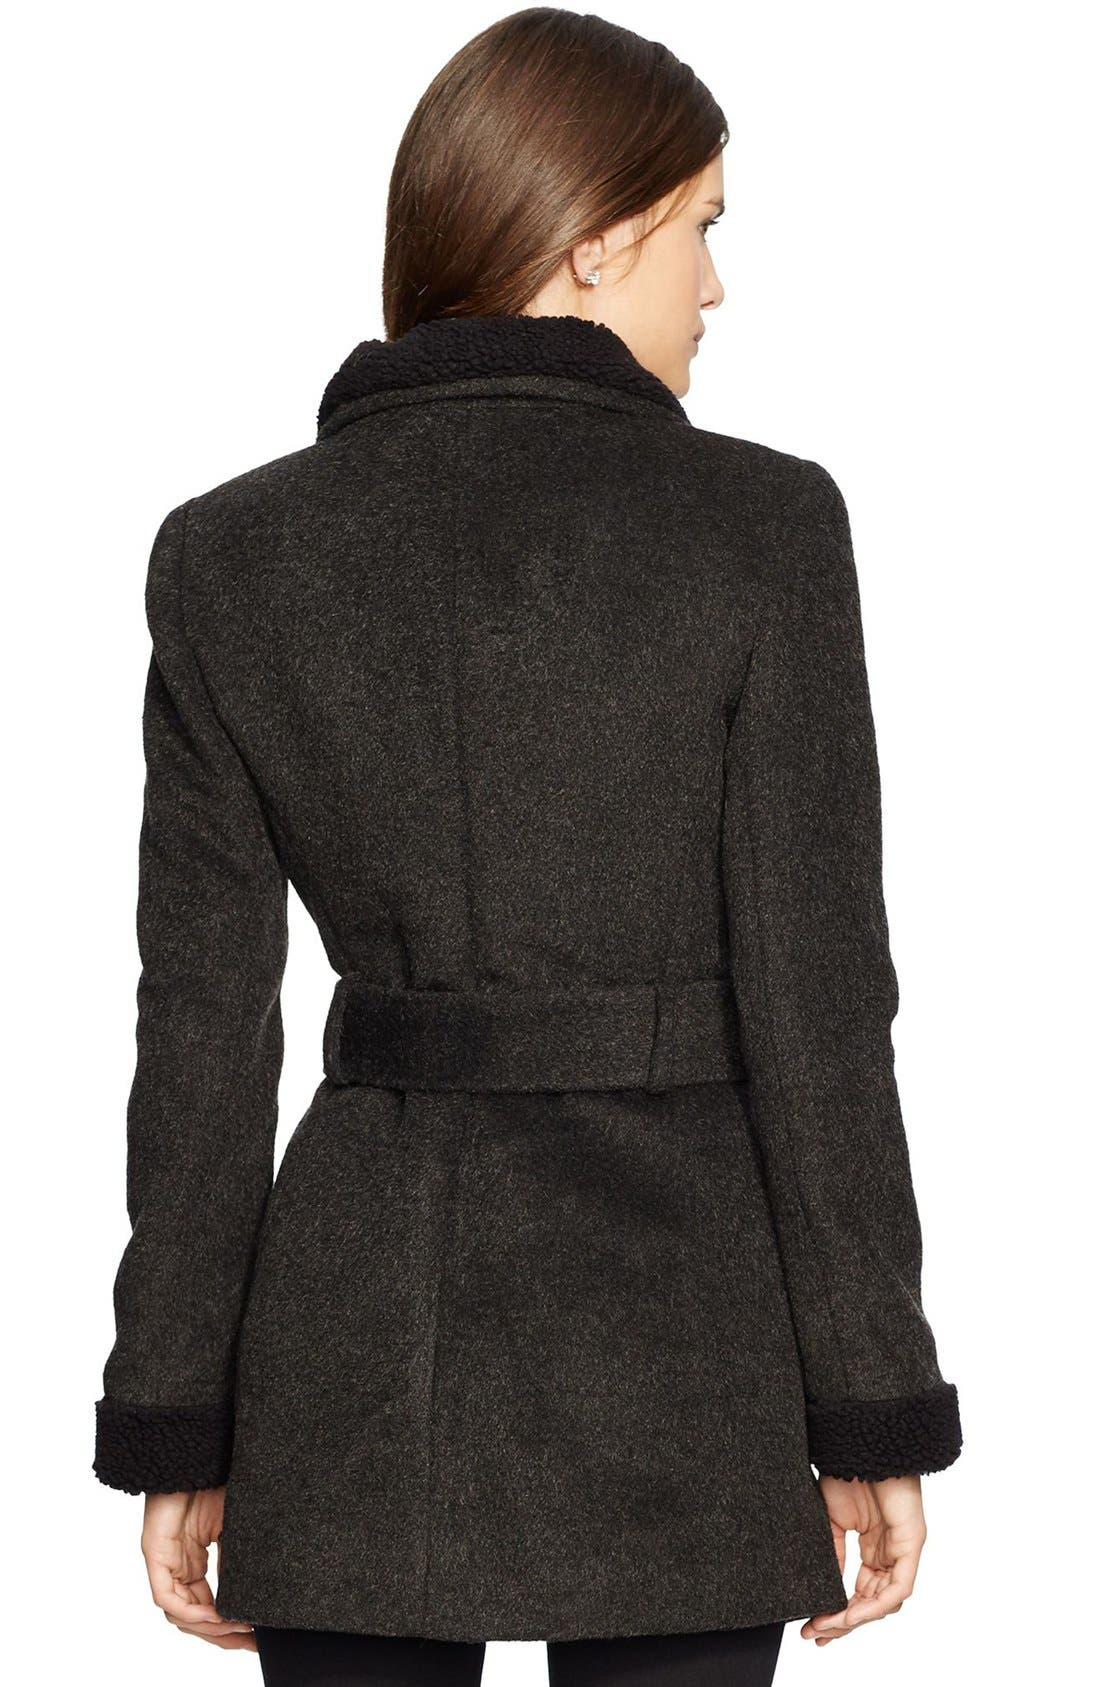 LAUREN RALPH LAUREN,                             Faux Shearling Trim Belted Wool Blend Coat,                             Alternate thumbnail 2, color,                             001